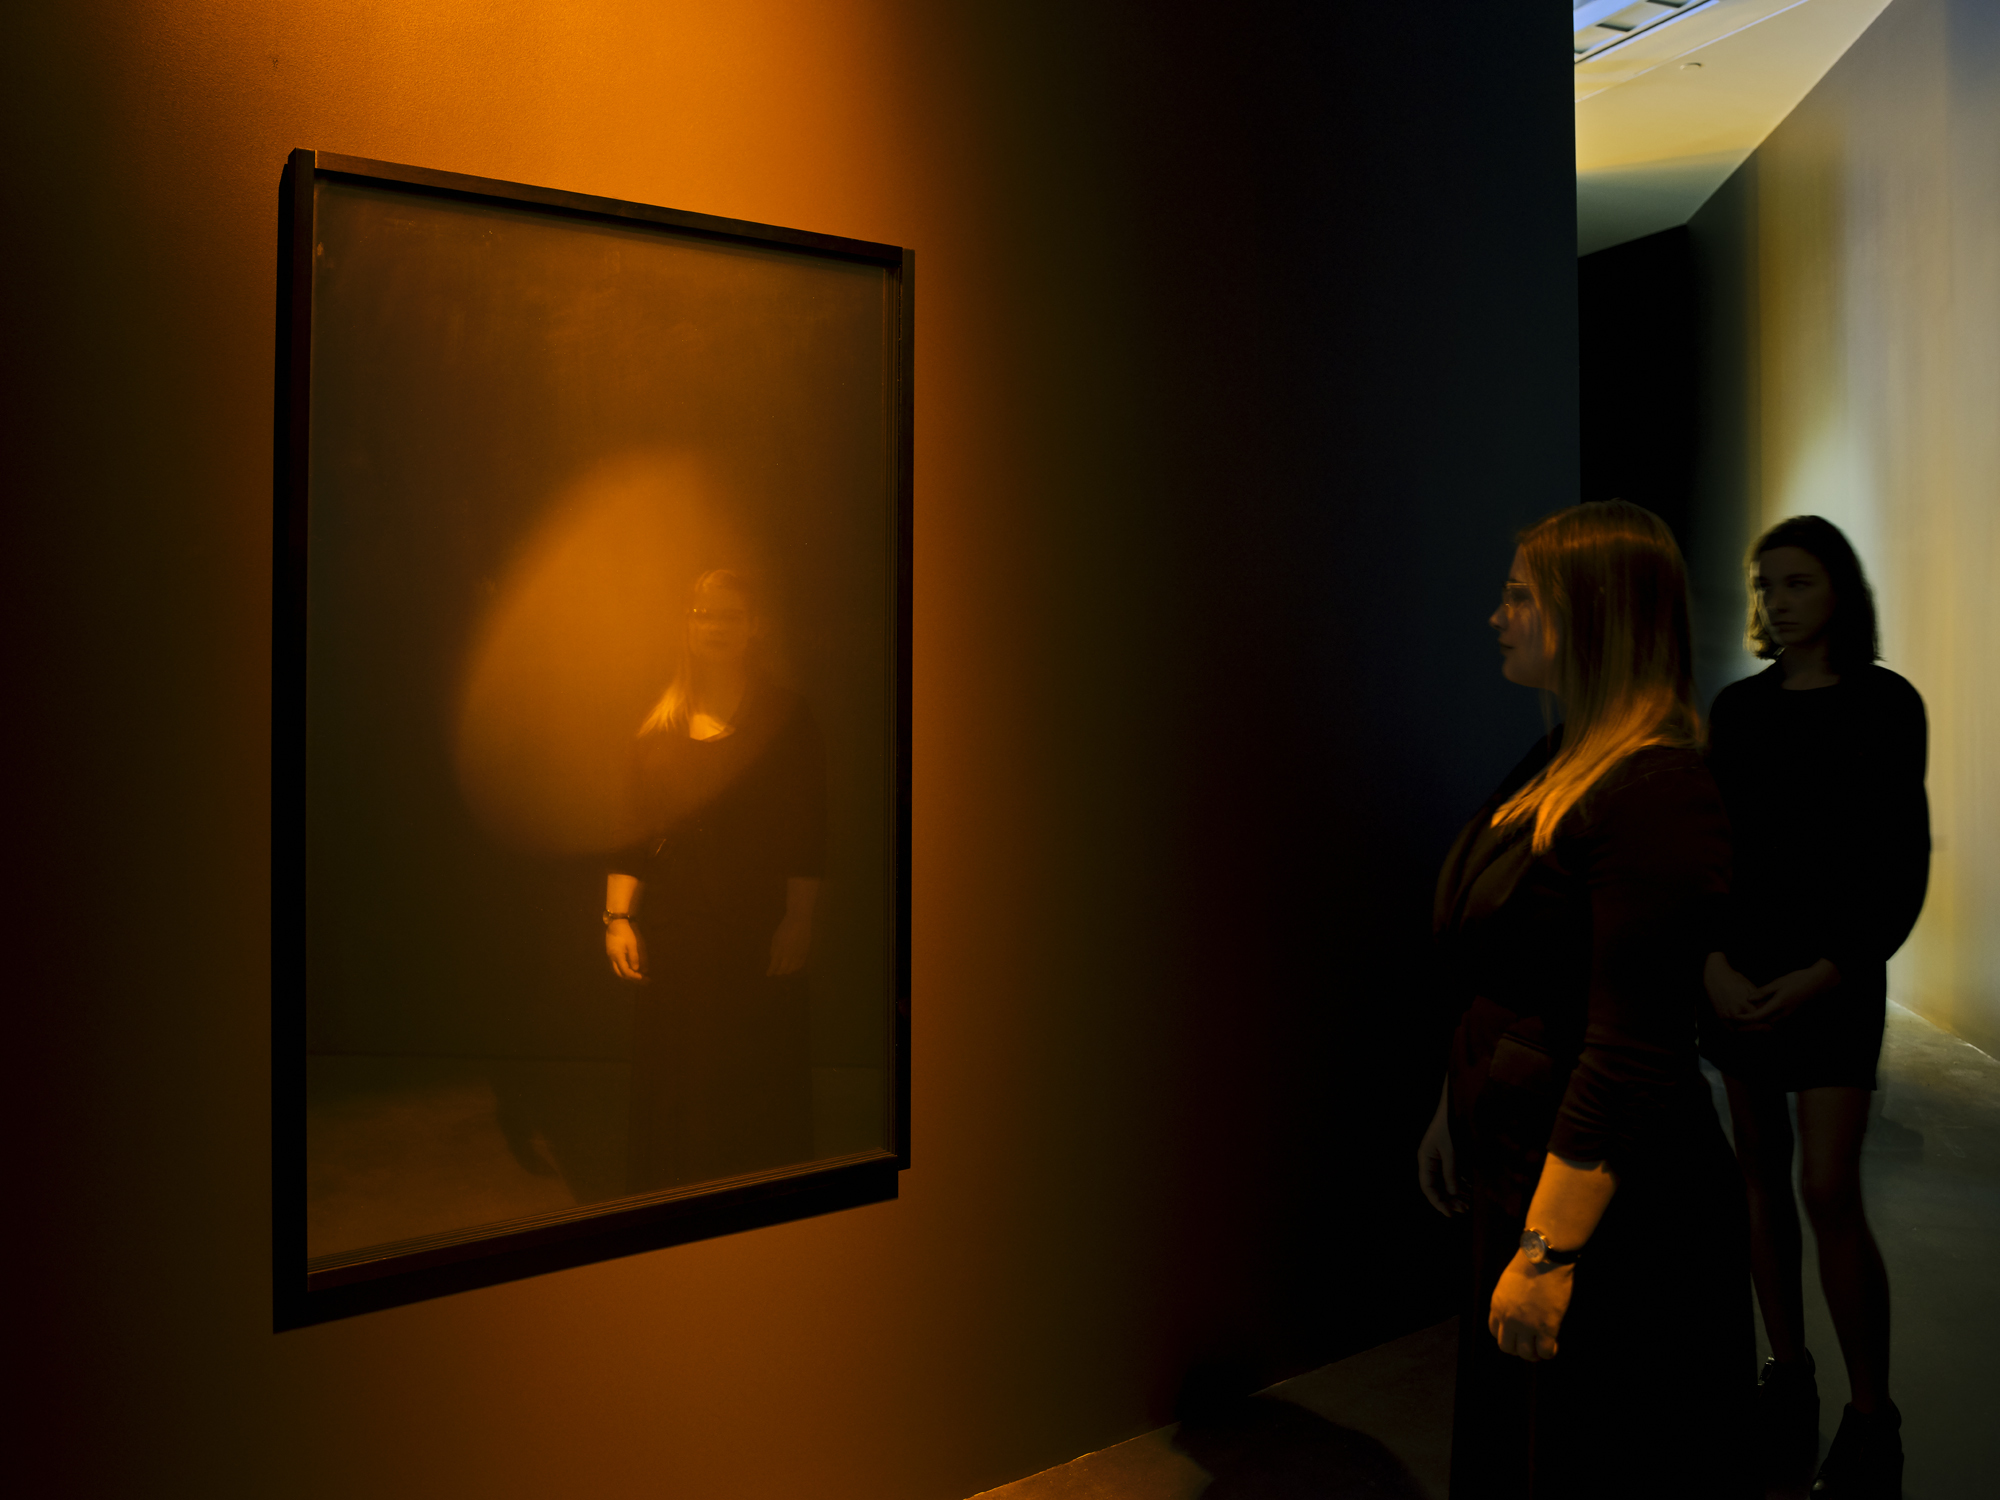 Two figures observe an orange holographic disc on display in a darkened art museum